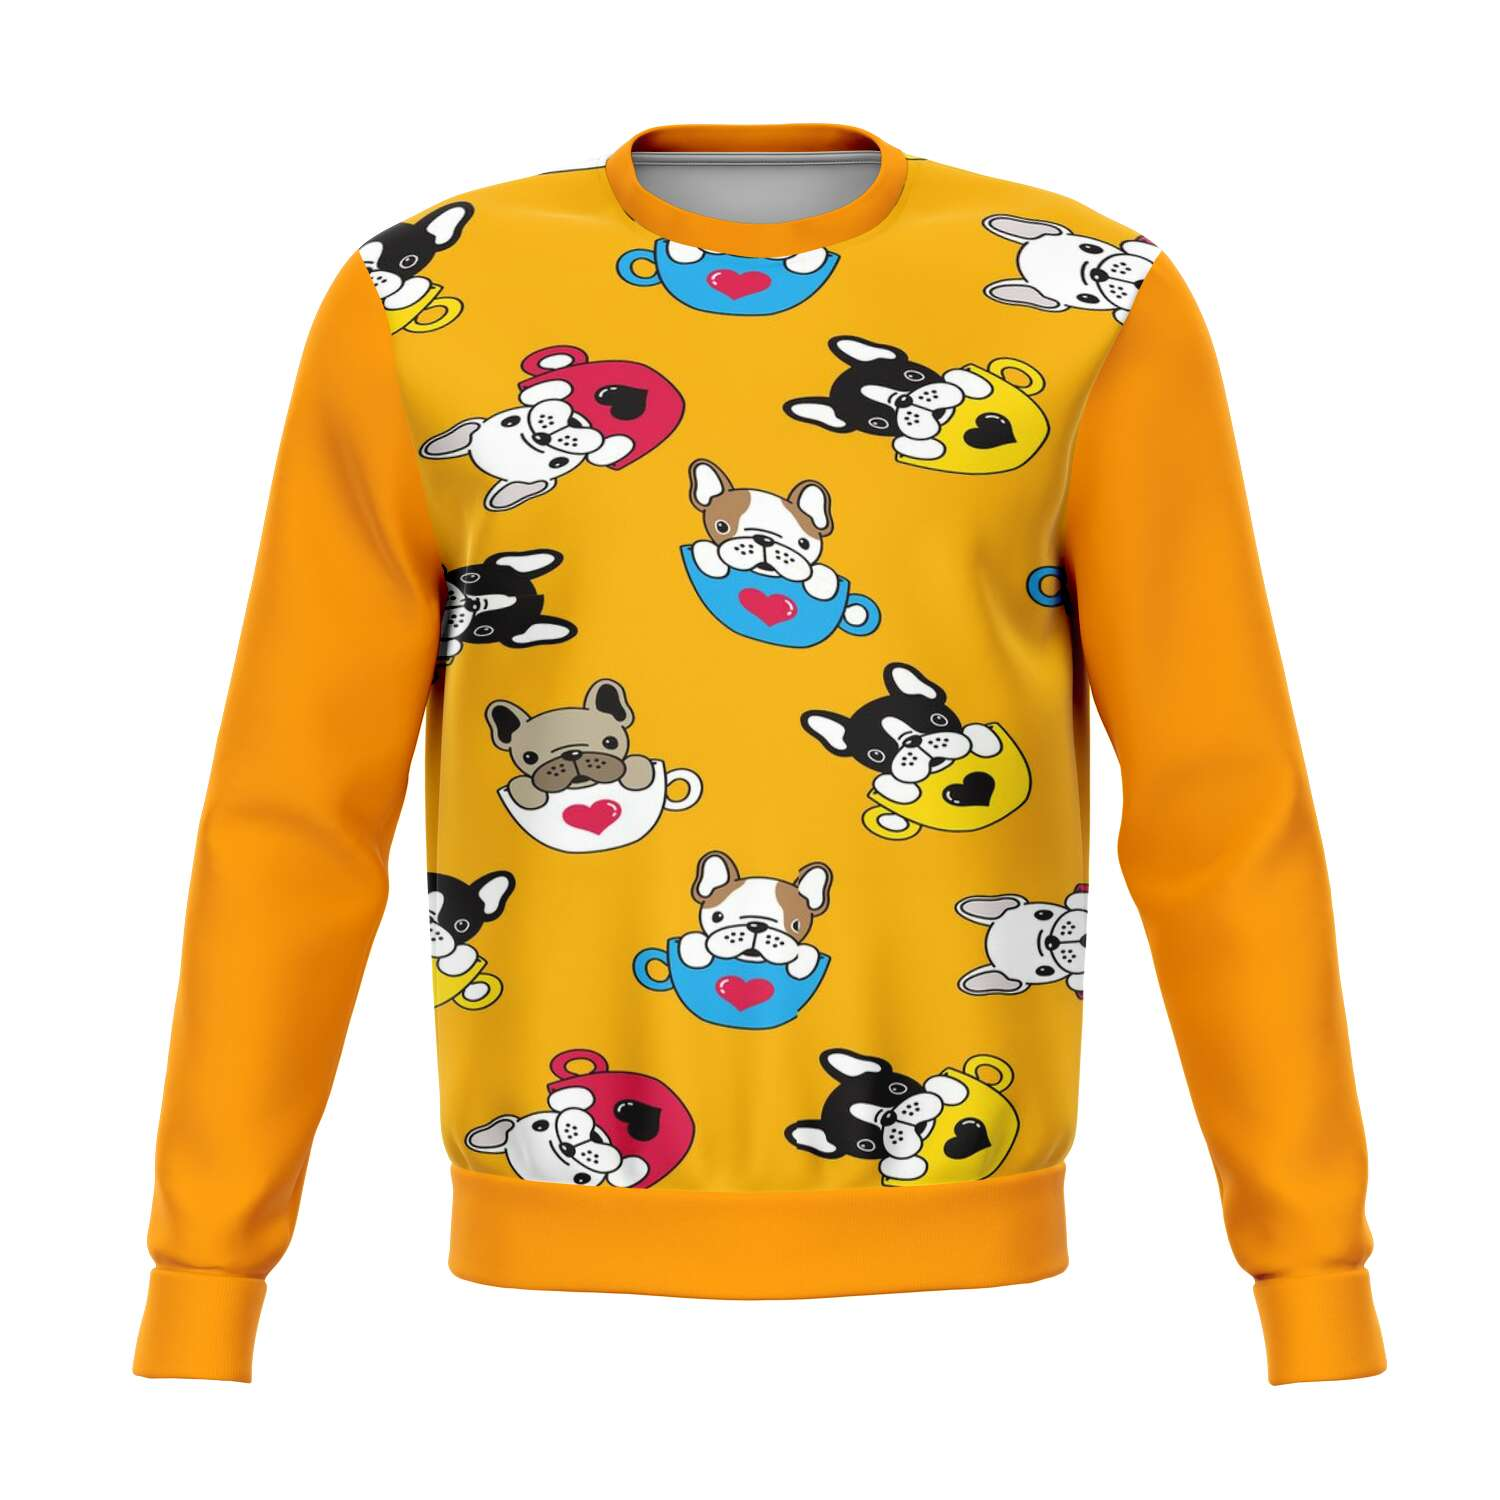 Daisy - French Bulldog Sweater - Frenchie Bulldog Shop